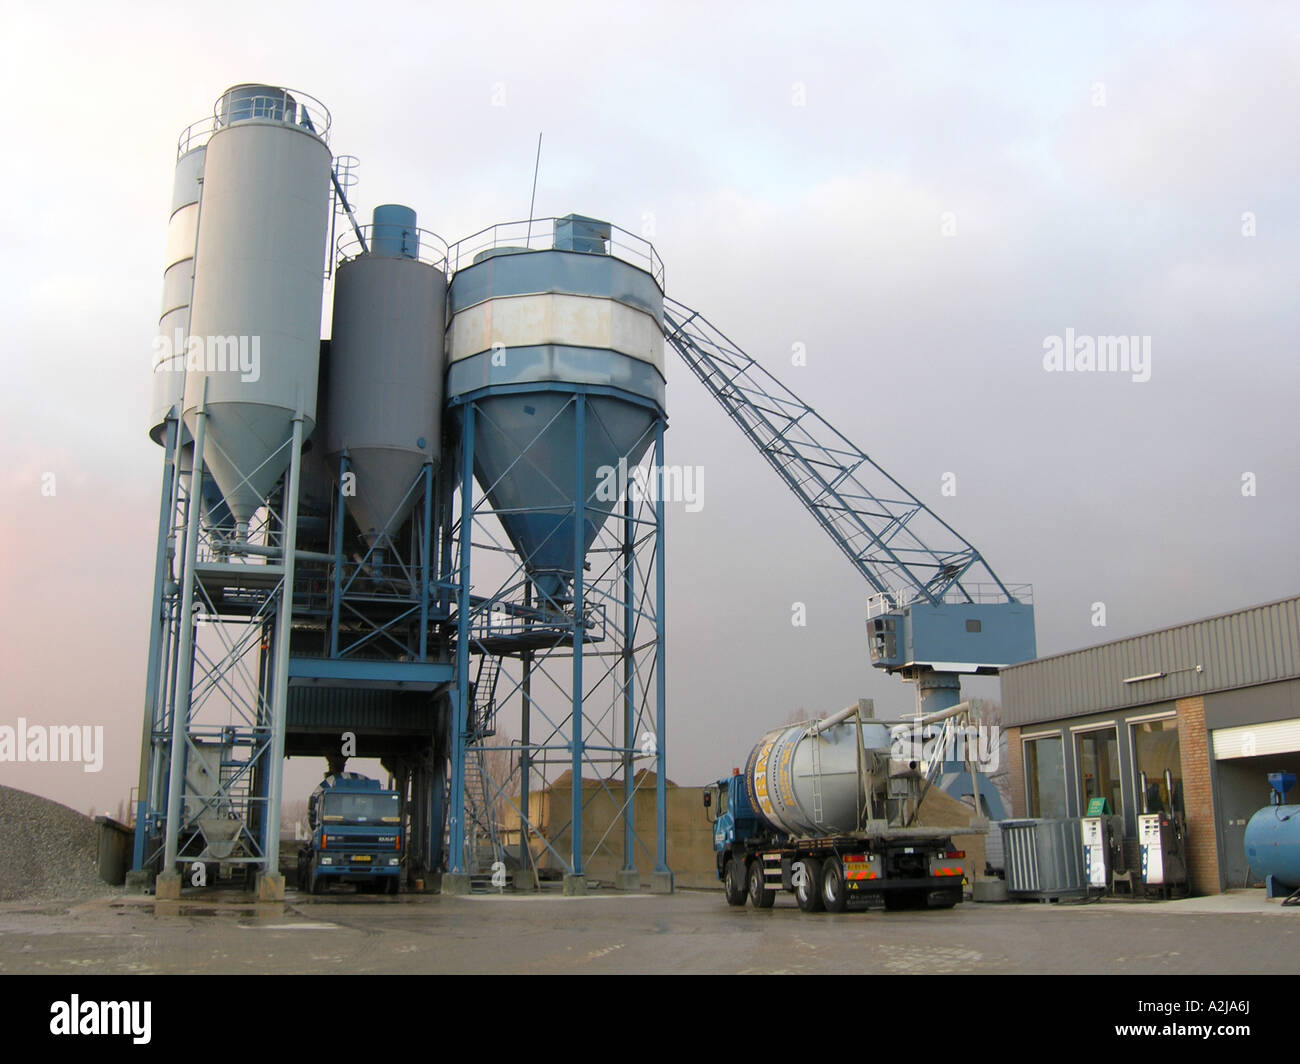 Cement Loading Plant : Concrete cement plant with truck loading stock photo